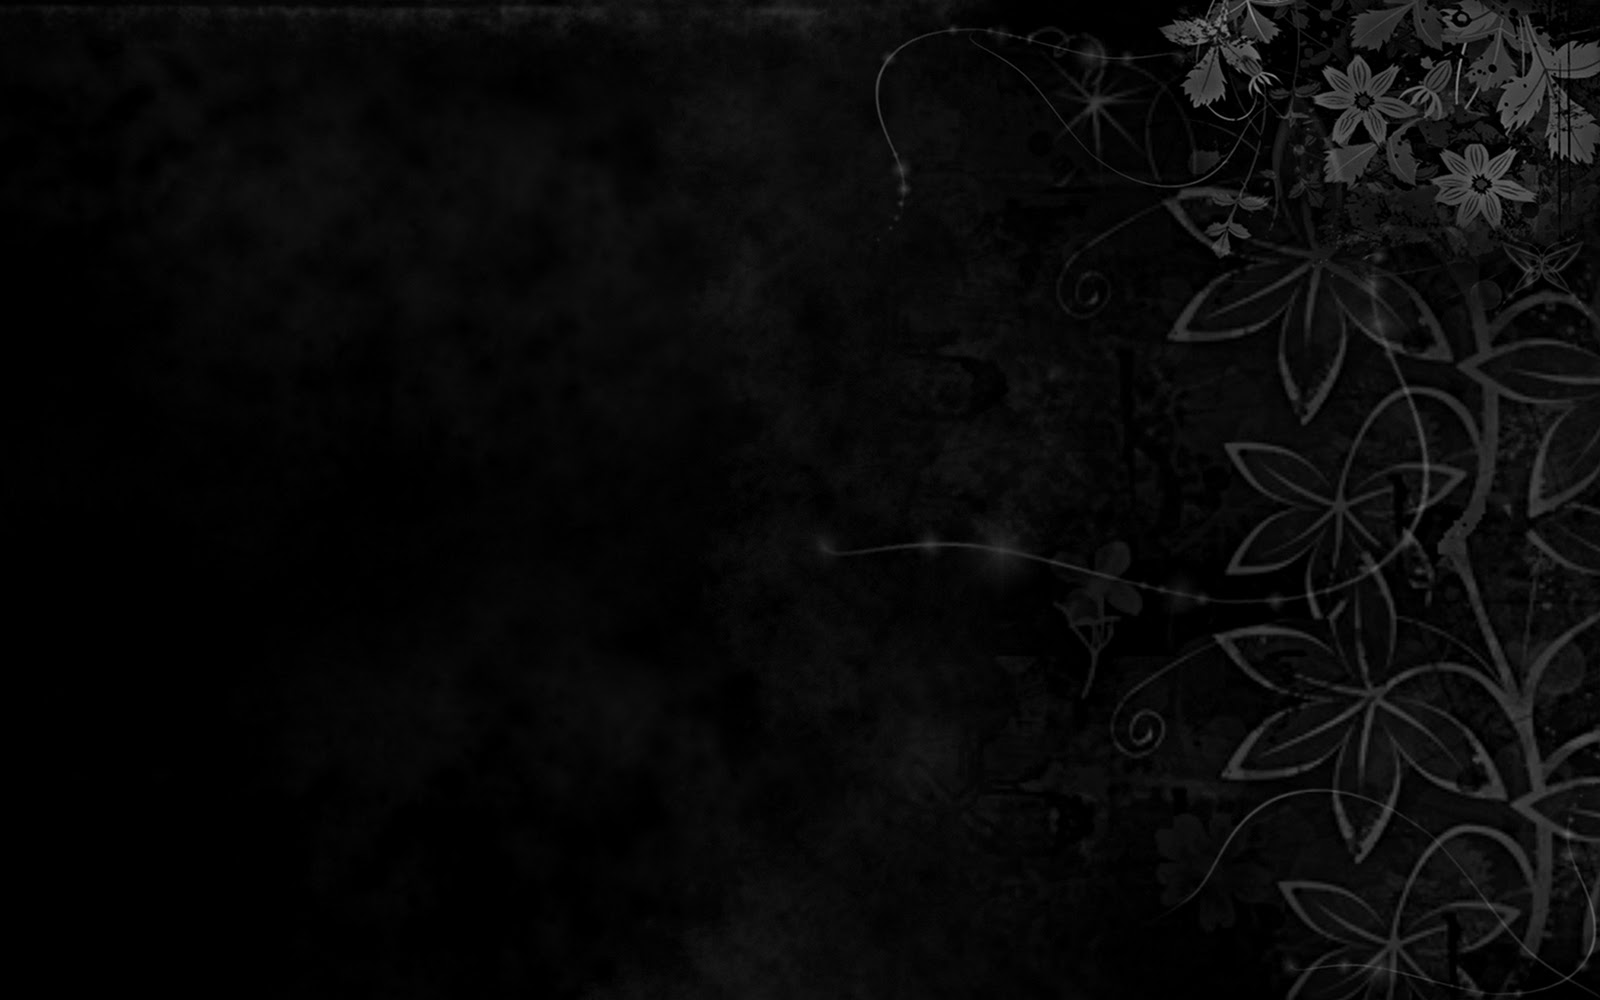 Strictly wallpaper grey black and dark wallpapers 2 for Black and grey wallpaper designs